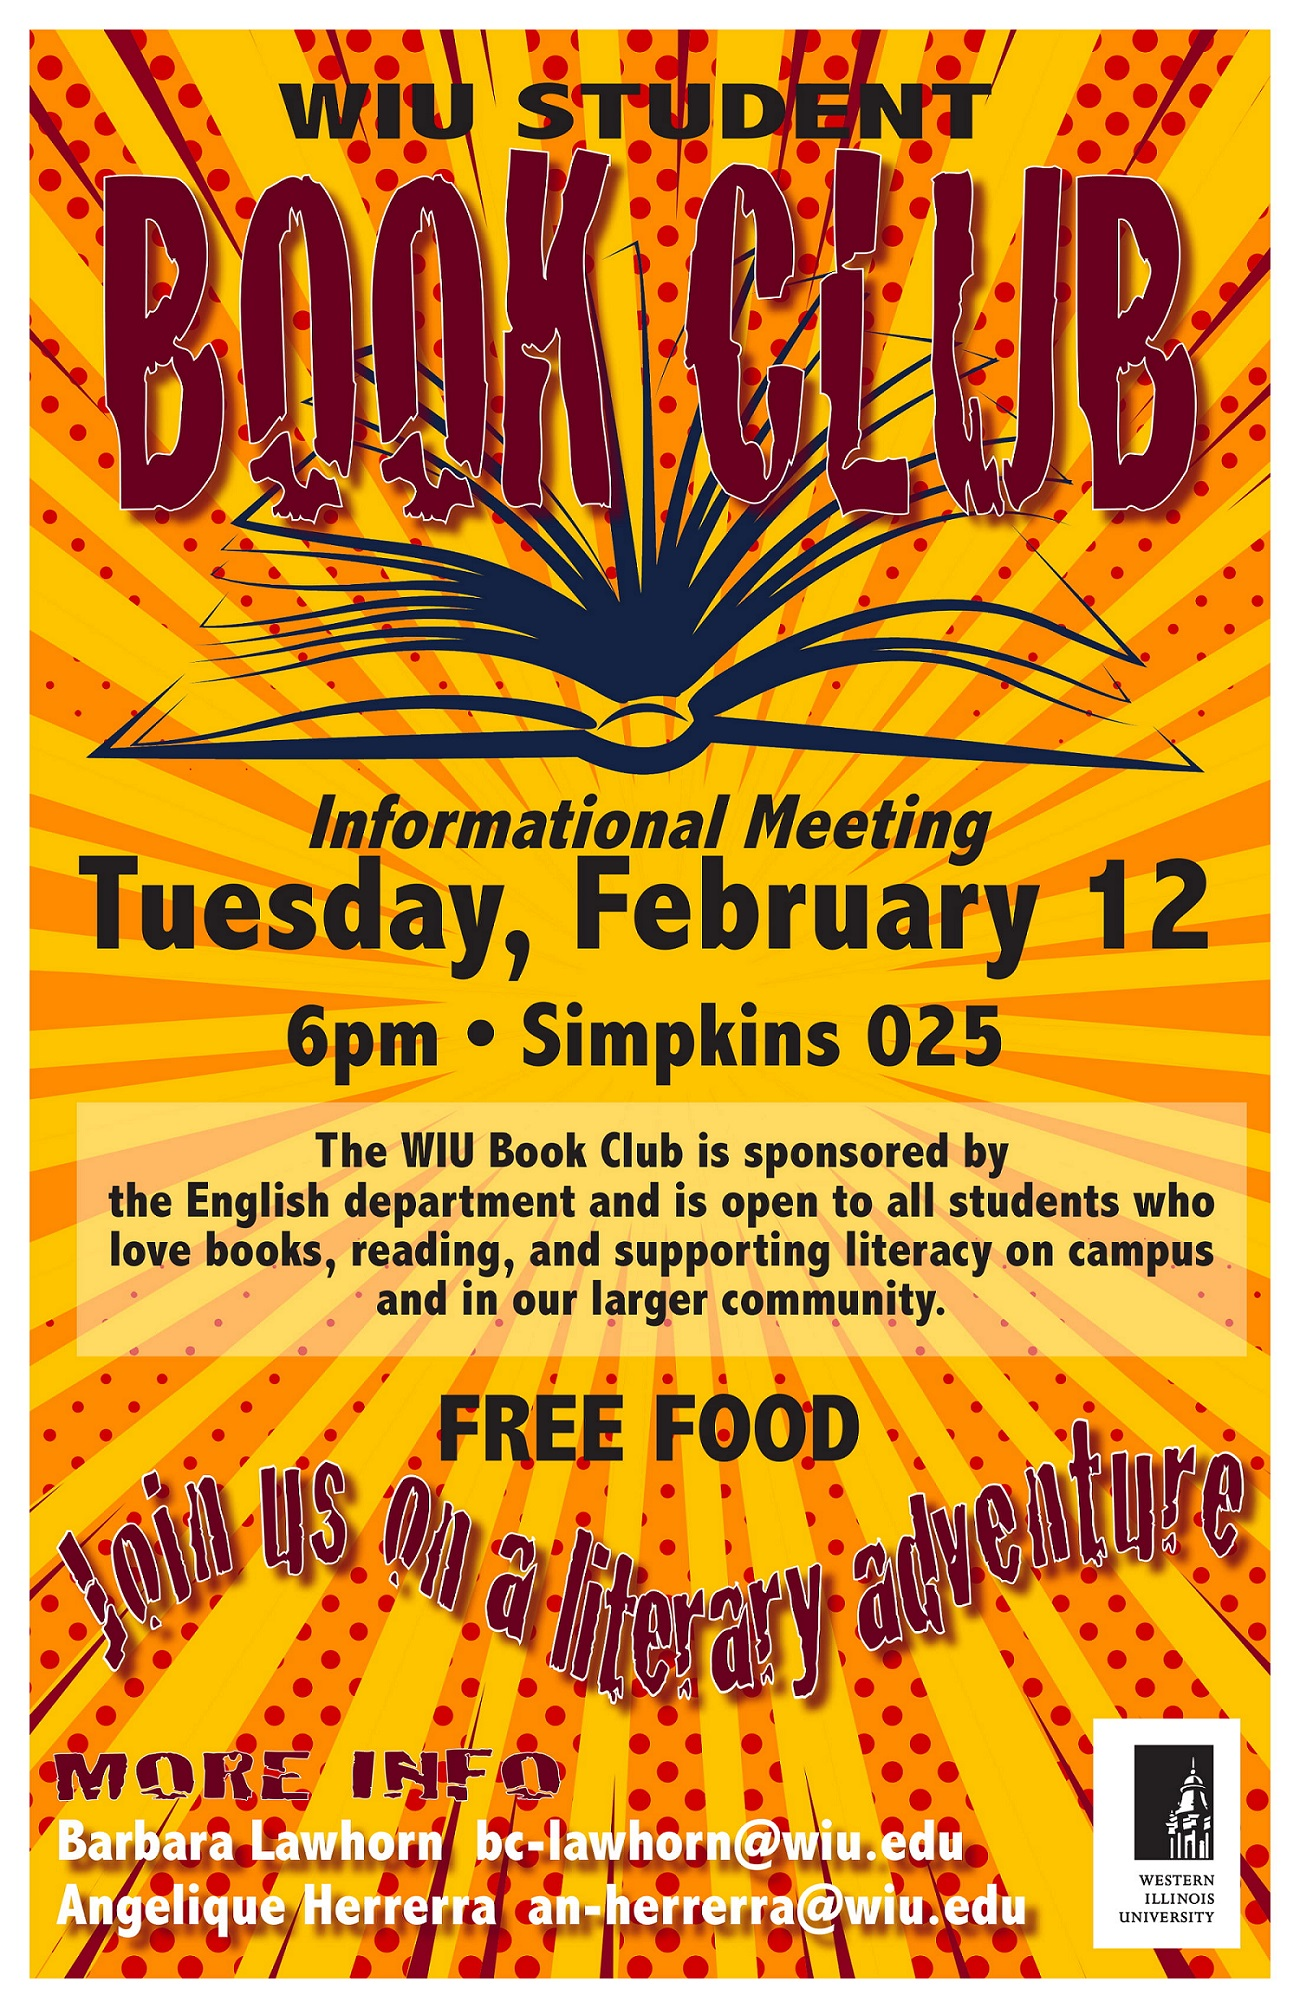 Book Club Informational Meeting